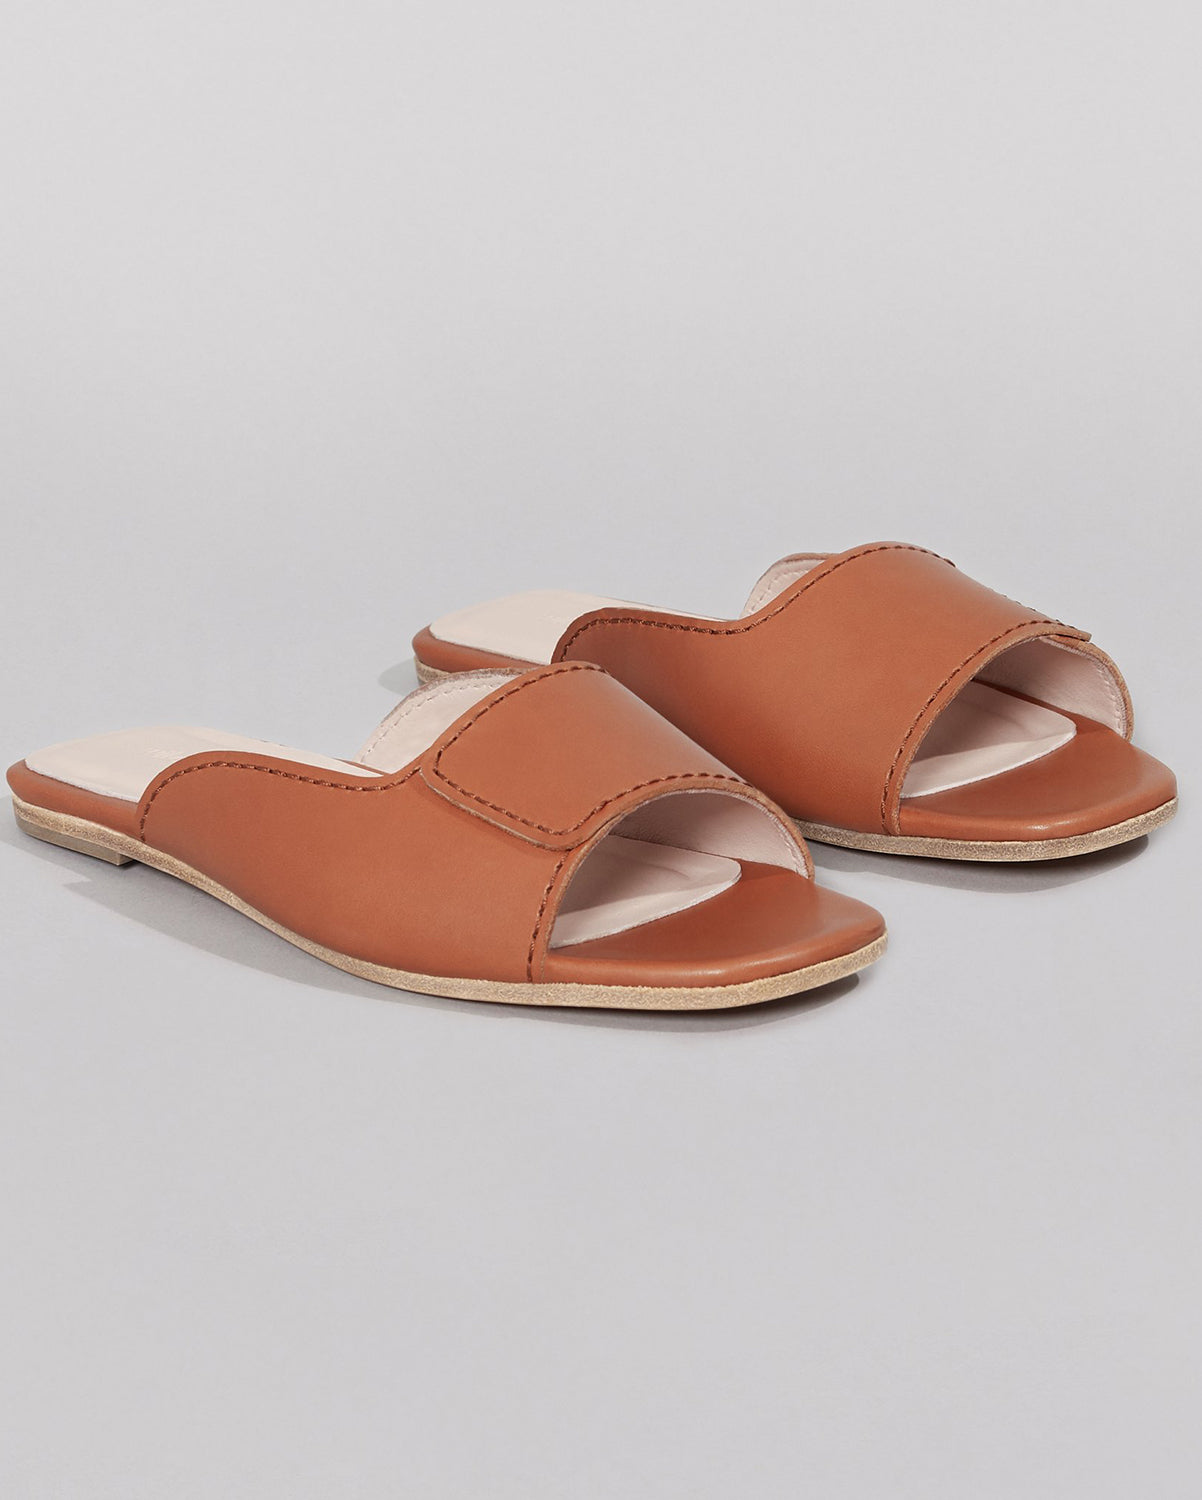 WILDER SHOES - MAUDE SLIDE - TAN VACHETTA